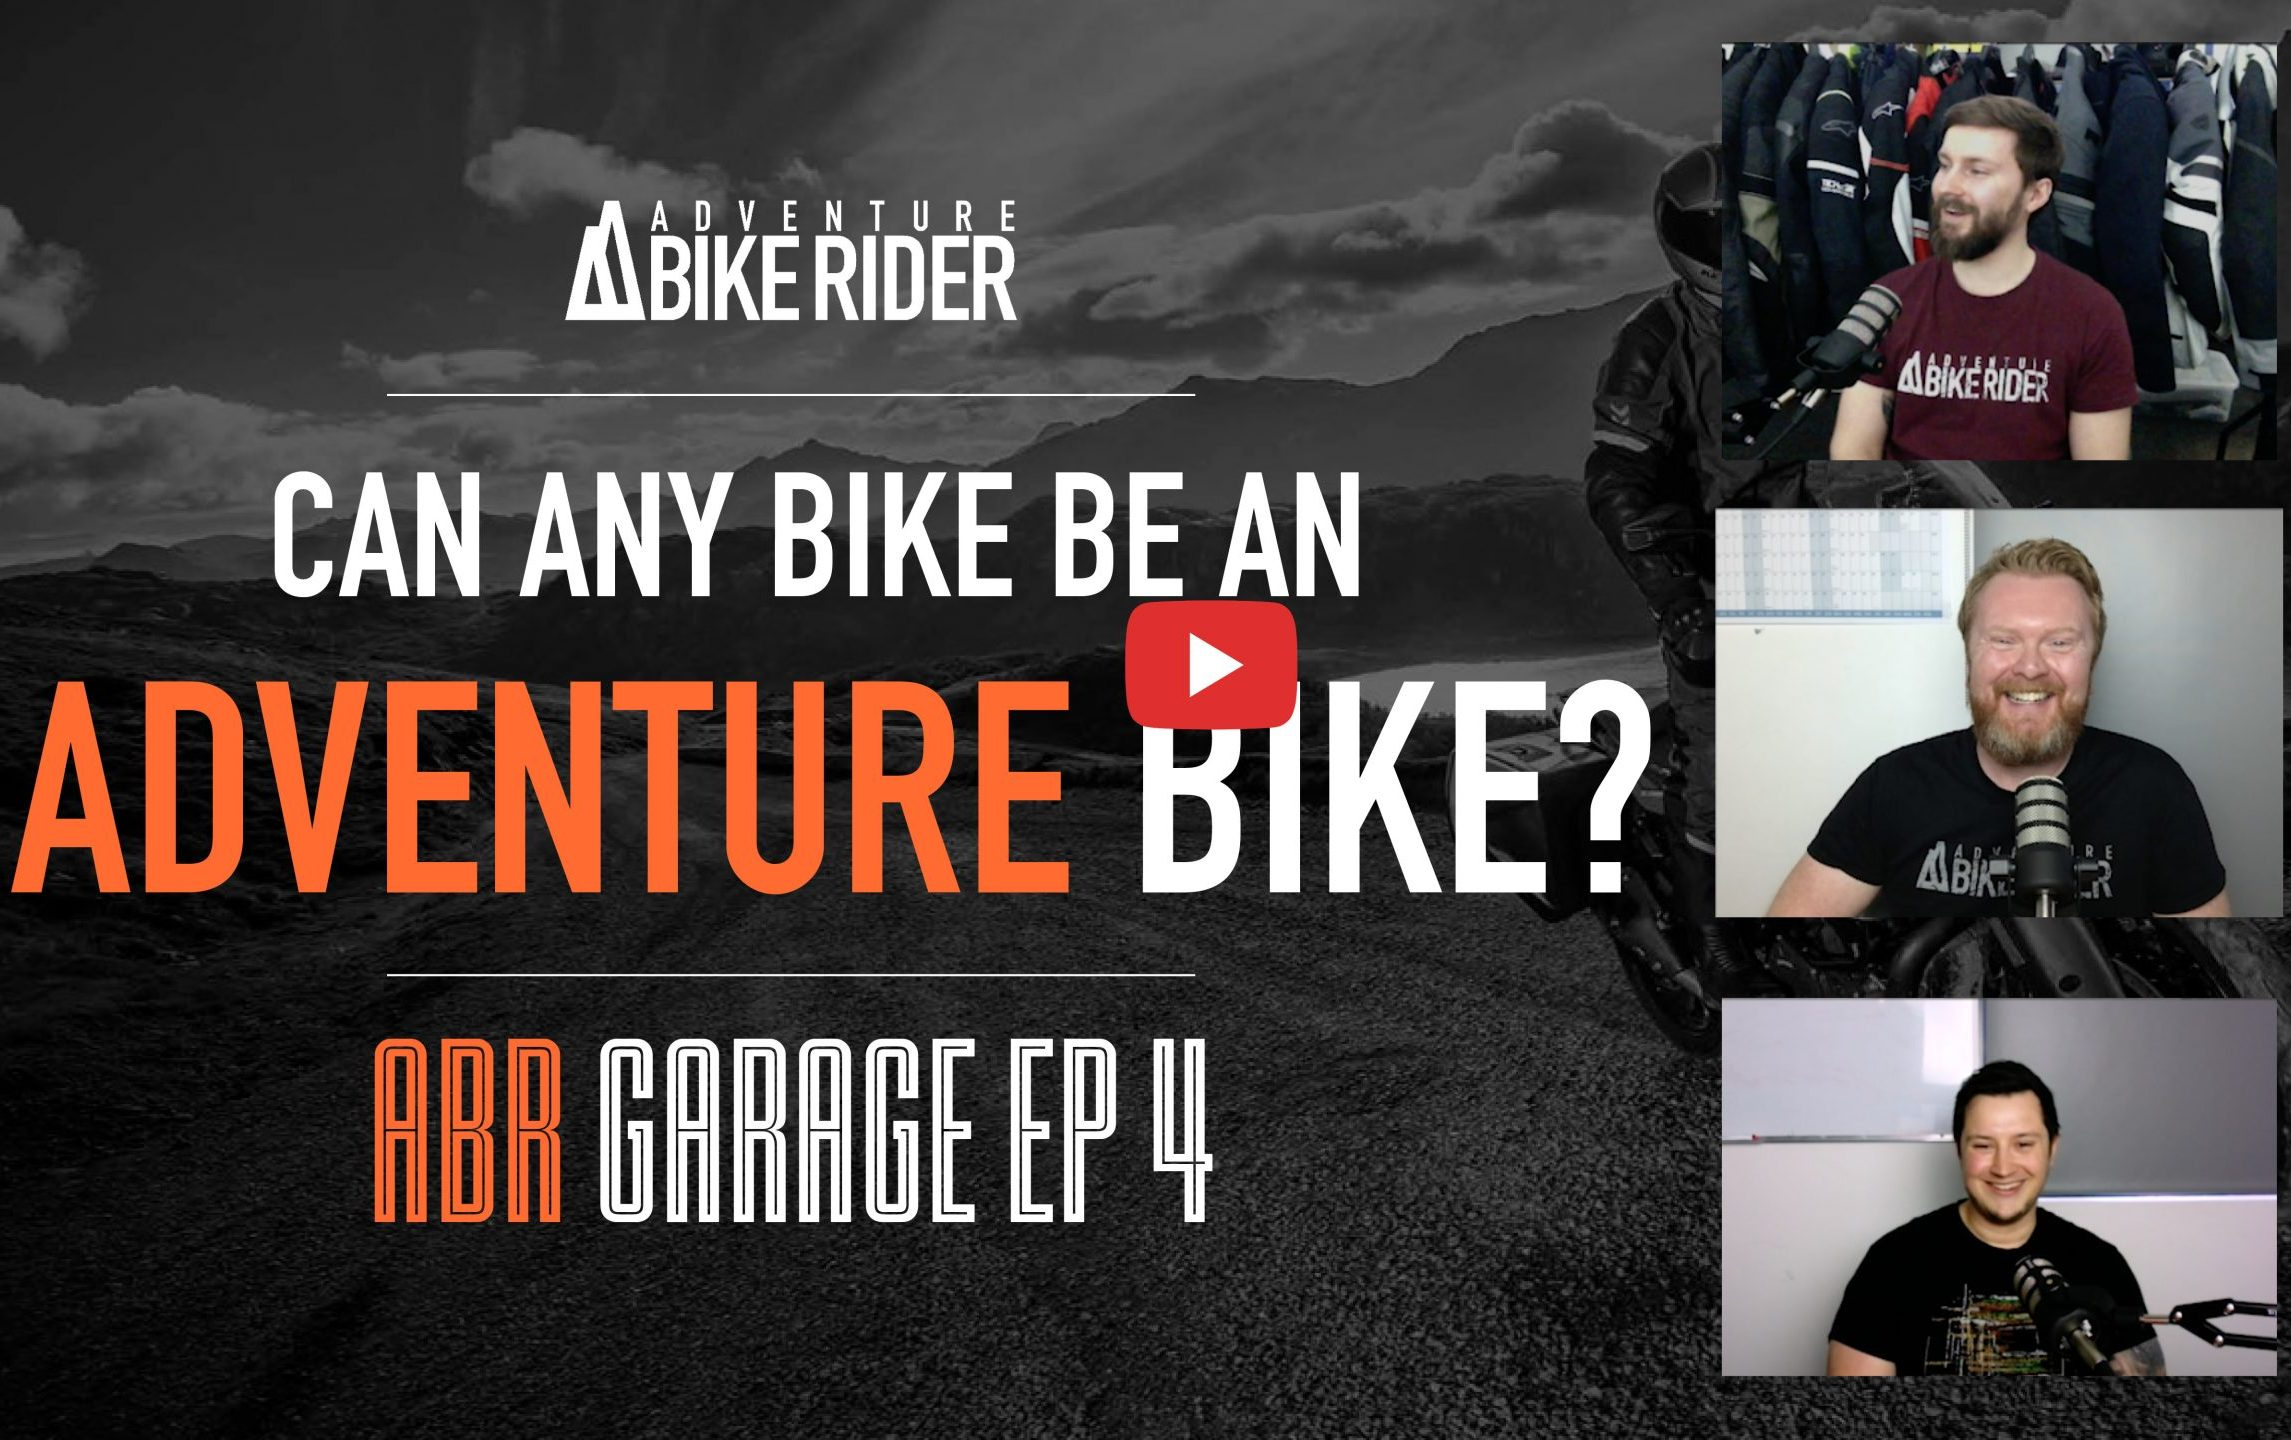 Can any bike be an adventure bike? ABR Garage Ep 4